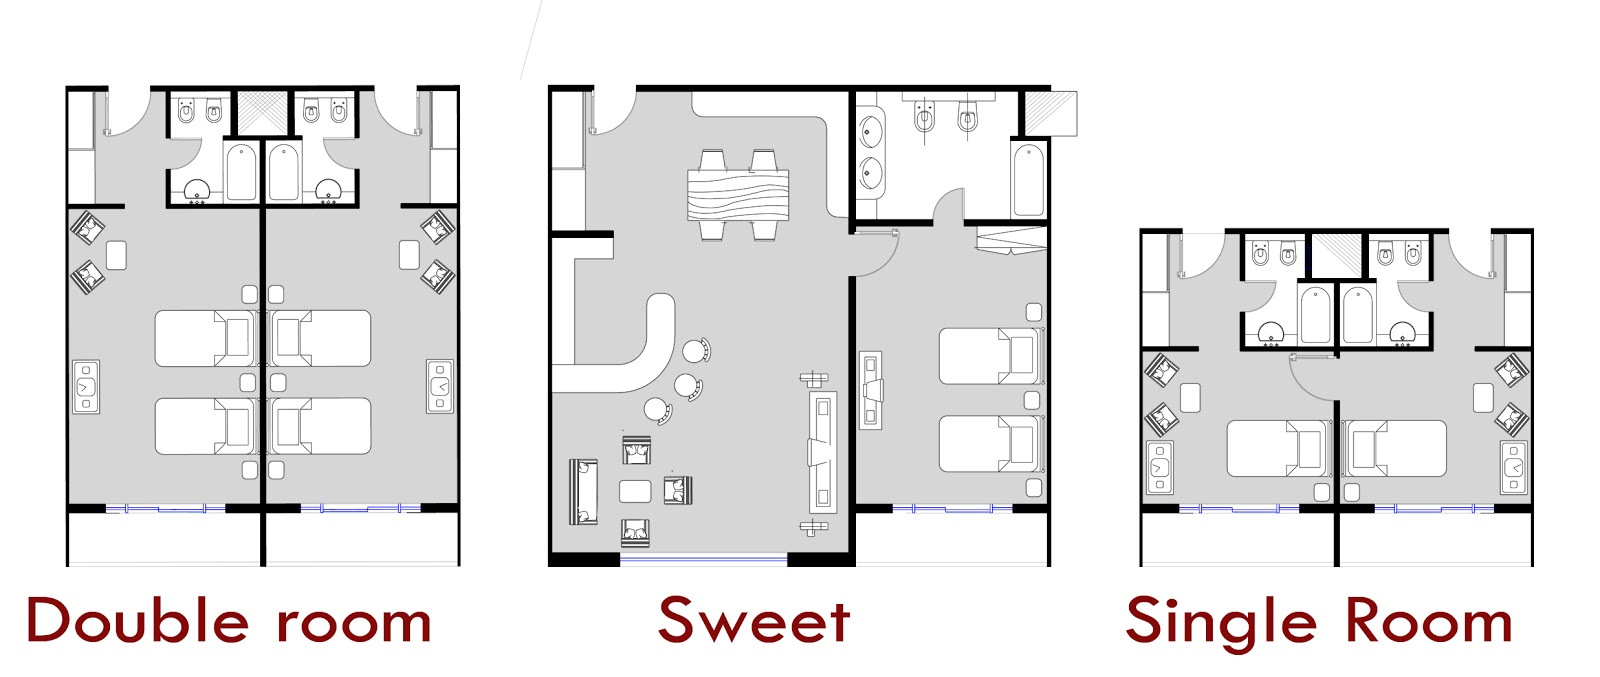 Room Layouts Captivating Hotel Room Plans & Layouts Olive Garden Interior Review